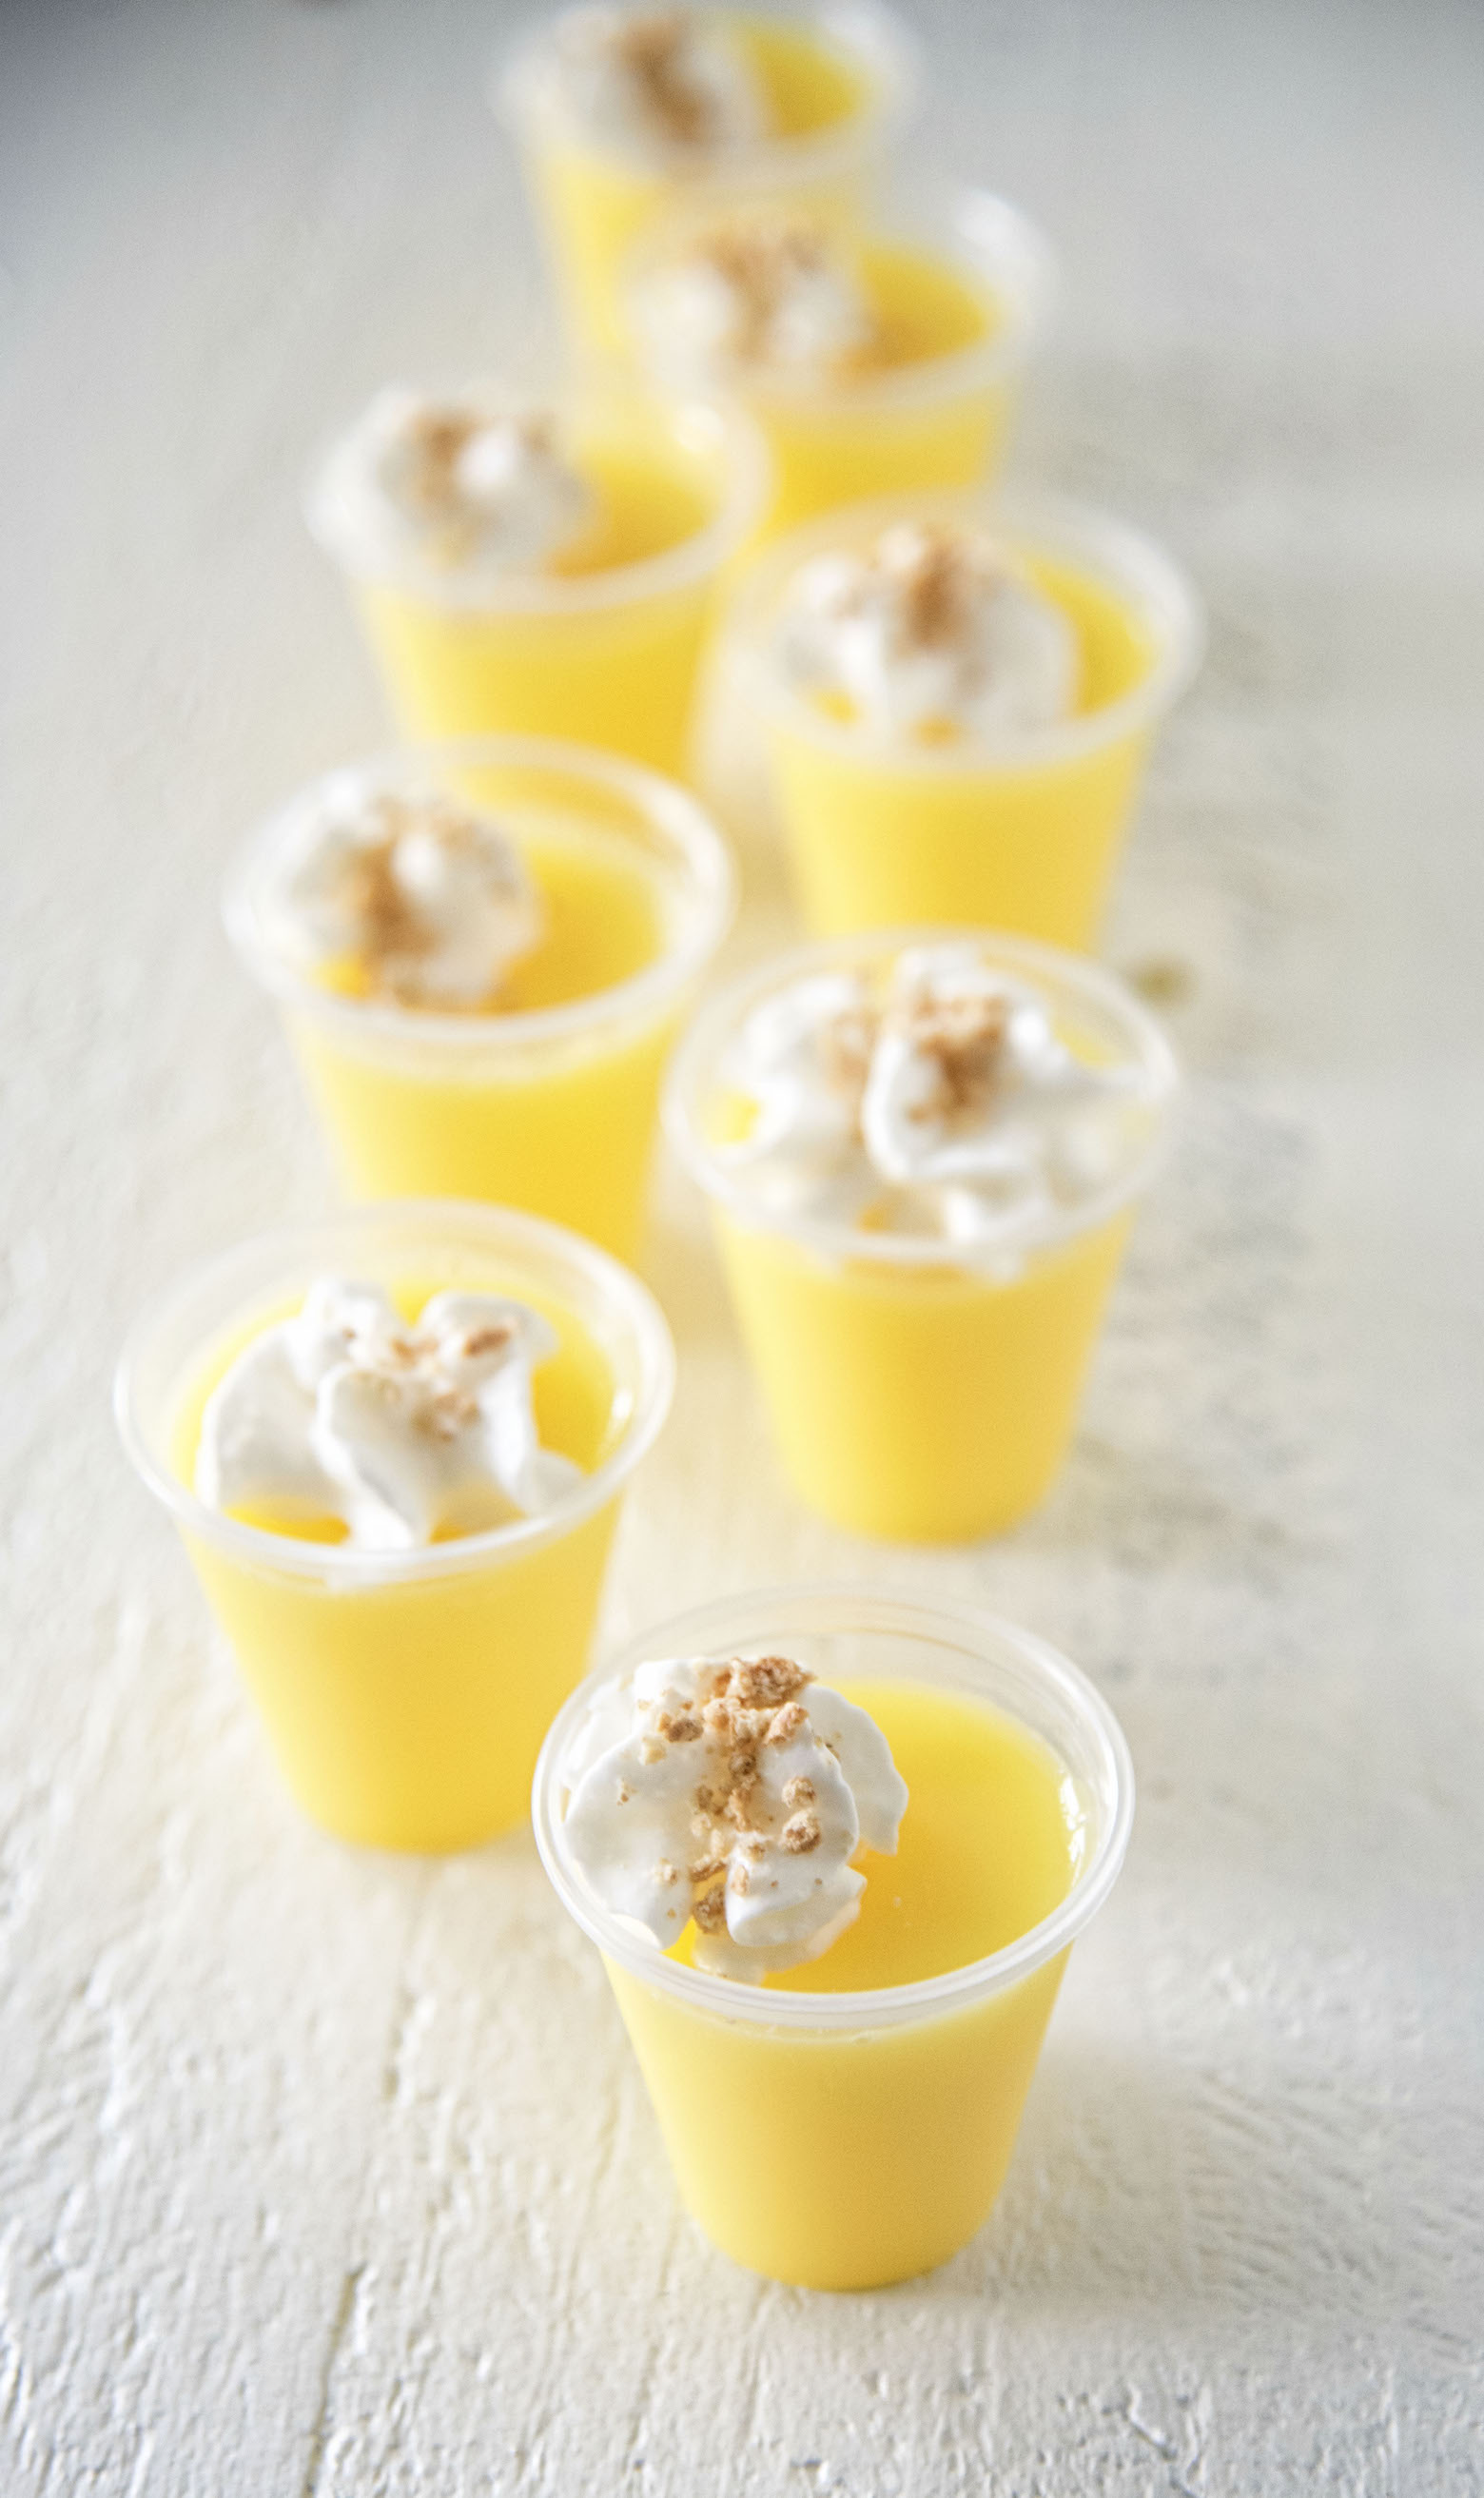 Lemon Cheesecake Jell-O Shots